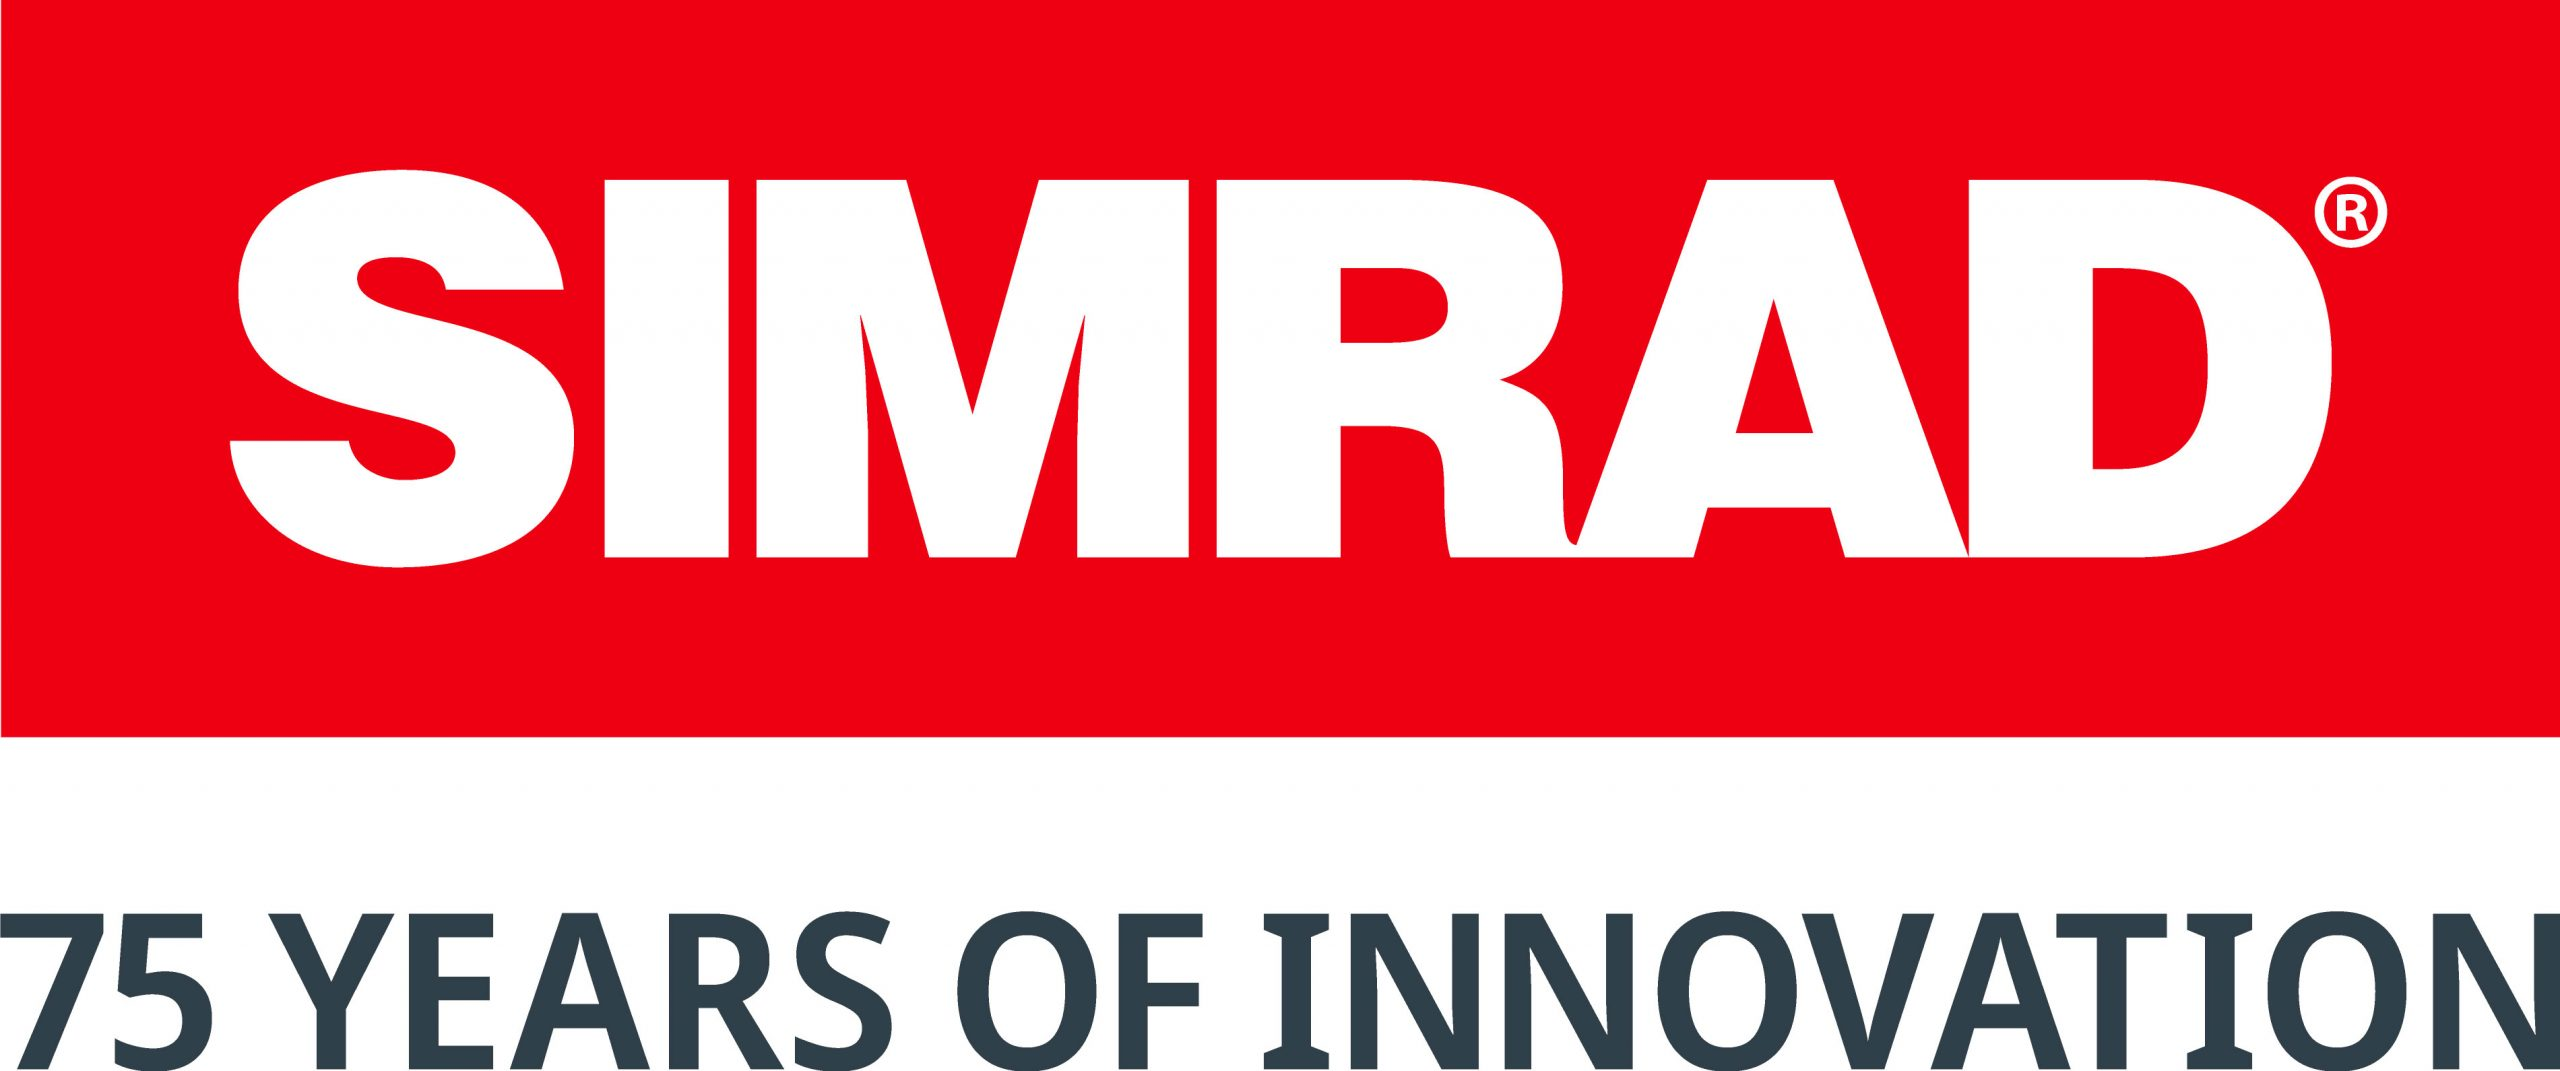 logo for Simrad Yachting 75 years of innovation